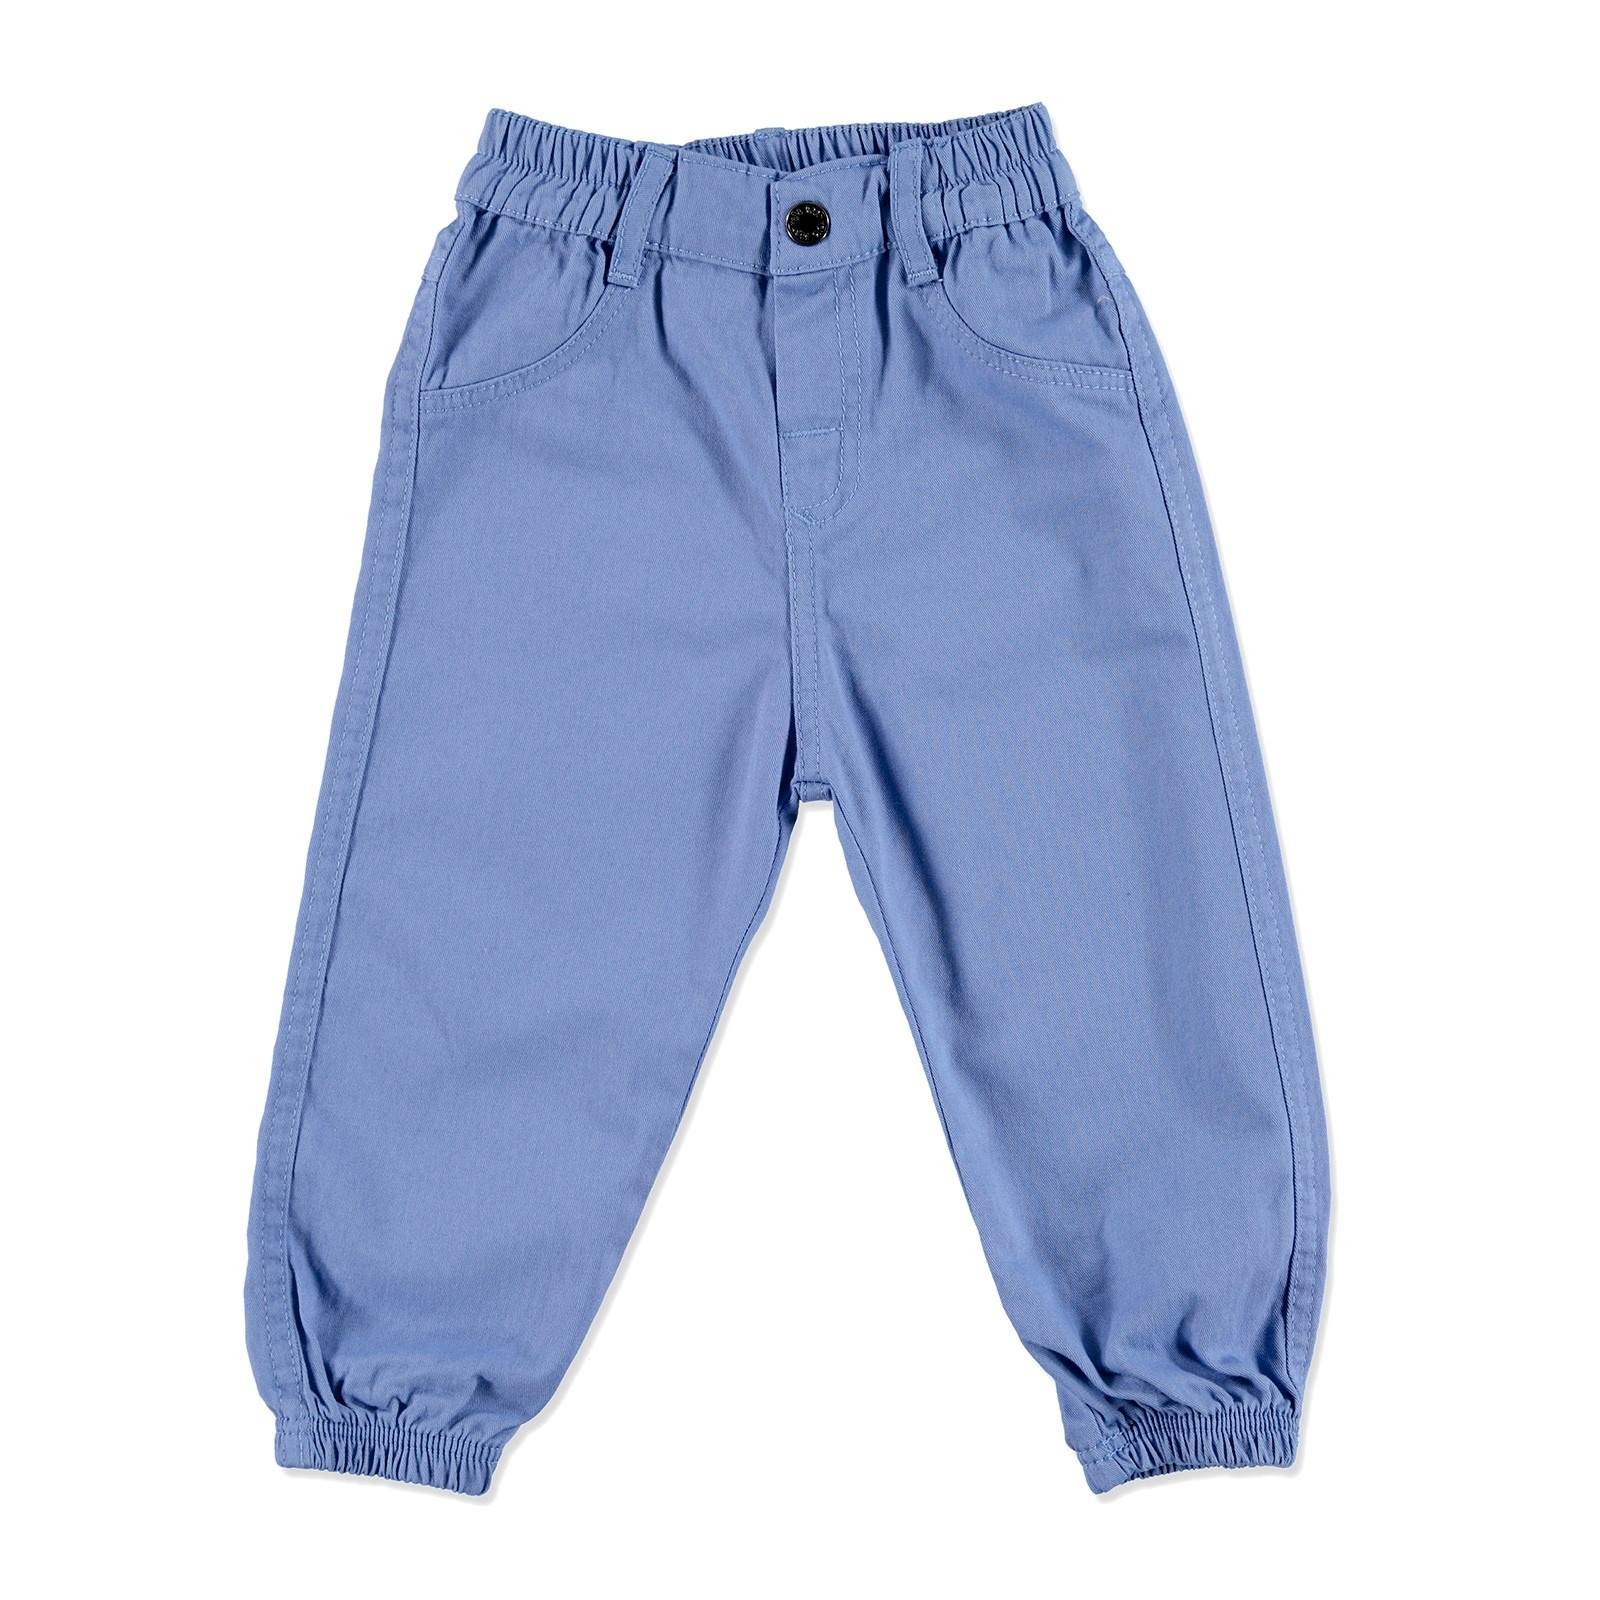 Ebebek HelloBaby Summer Baby Boy Cotton Pant